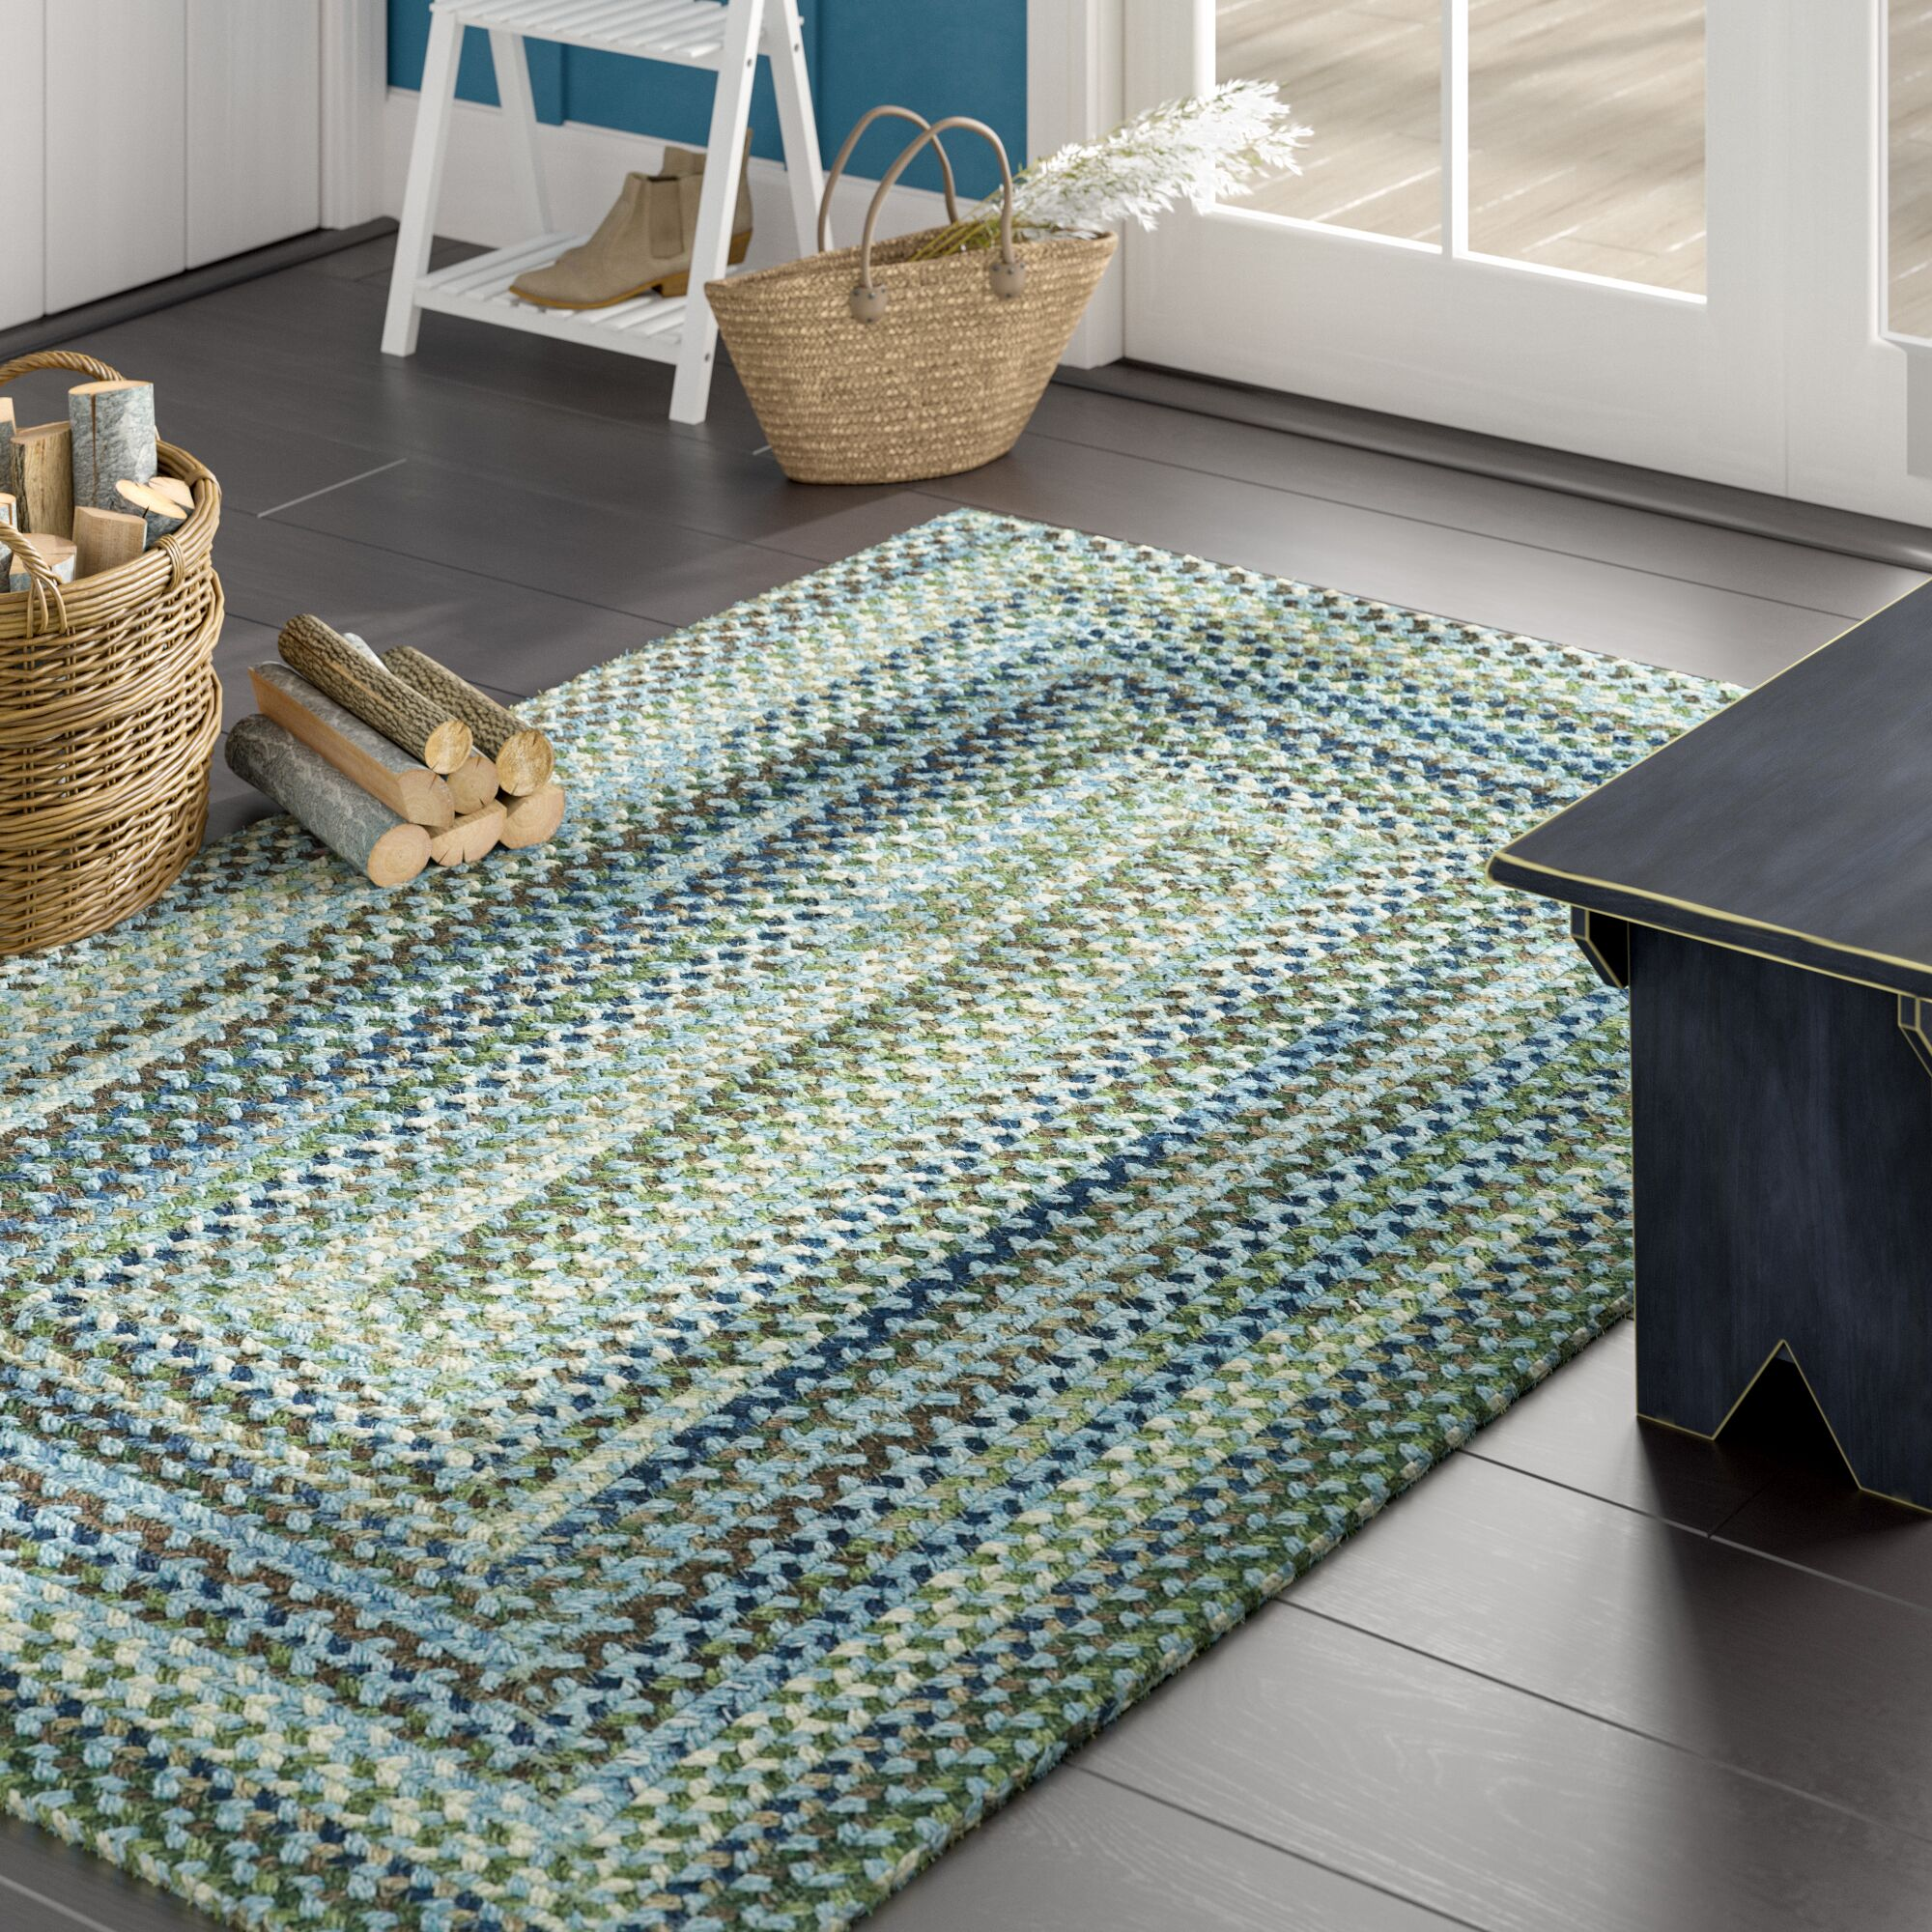 Holcombe Light Blue Area Rug Rug Size: Concentric Square 7'6